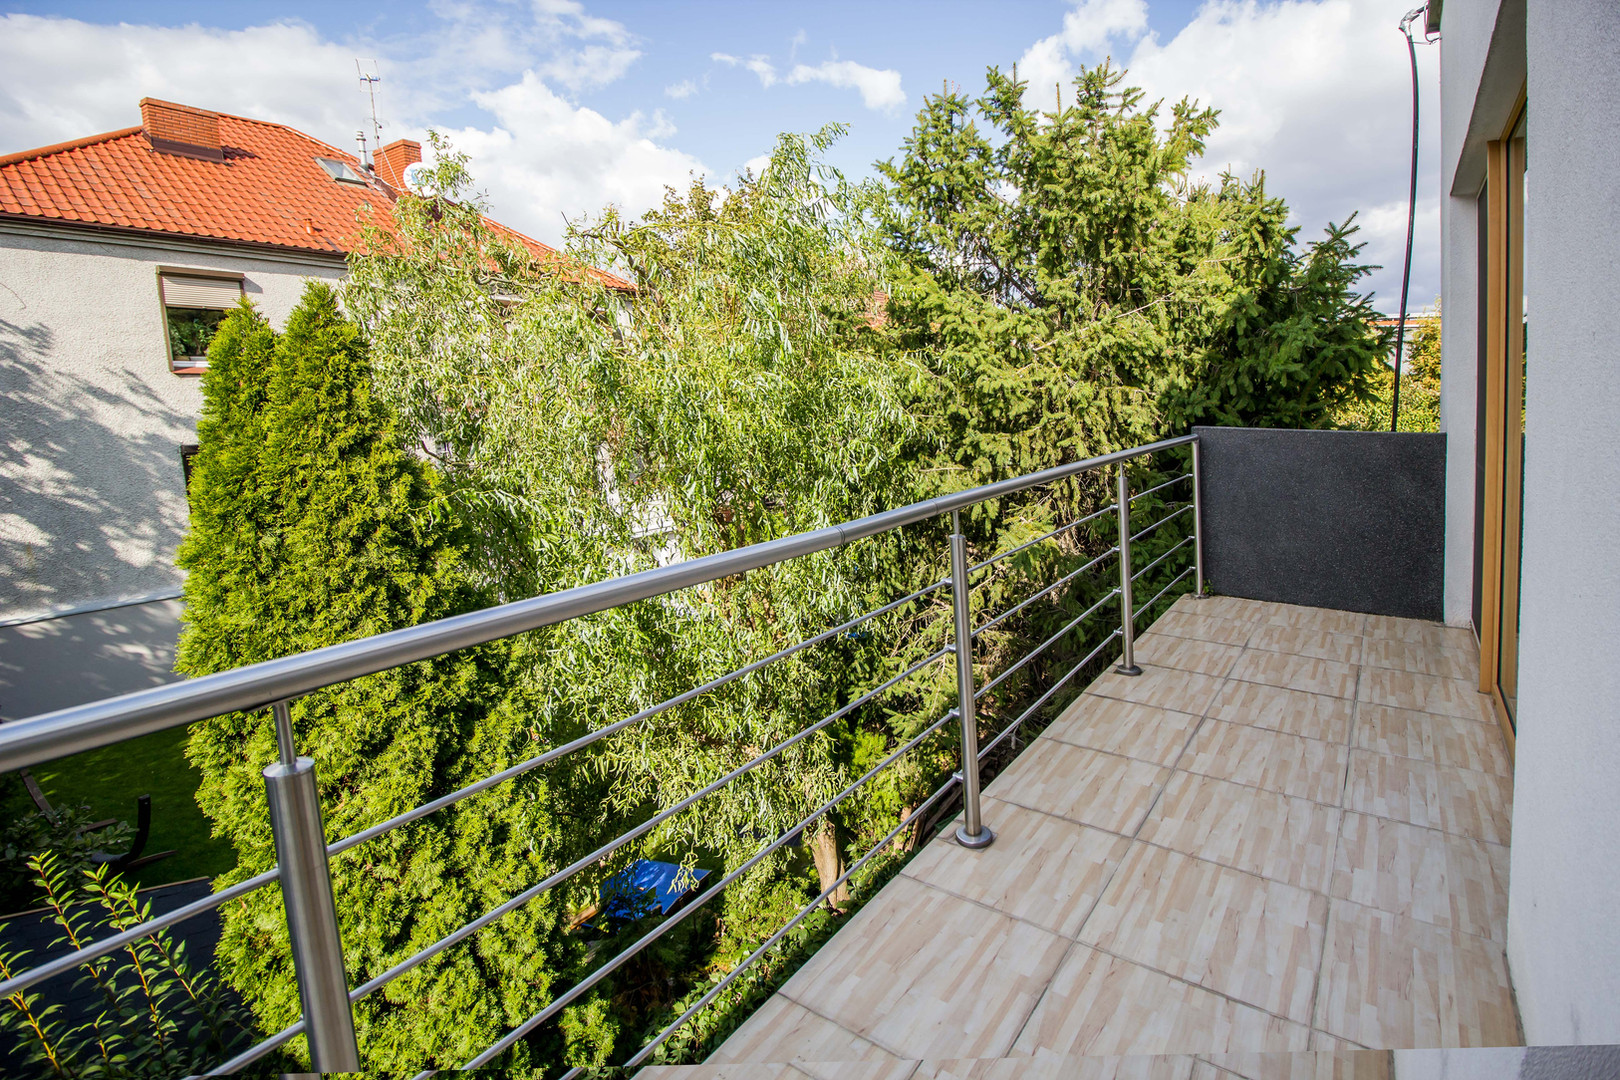 House for rent Poznan Poland (30 of 31).